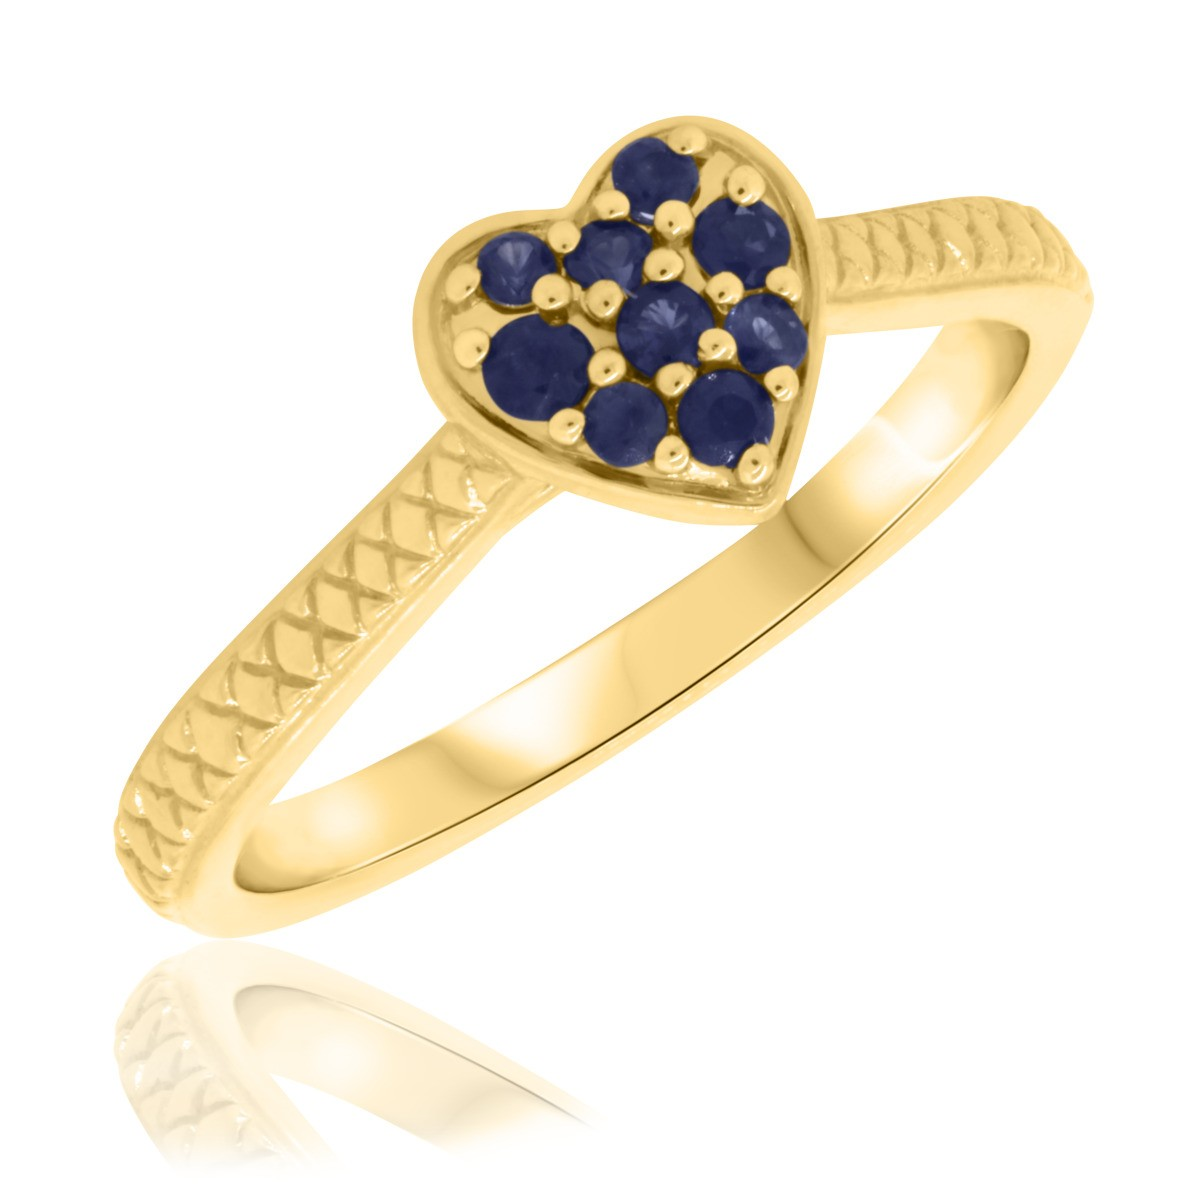 1/4 Carat T.W. Sapphire Engagement Ring 10K Yellow Gold